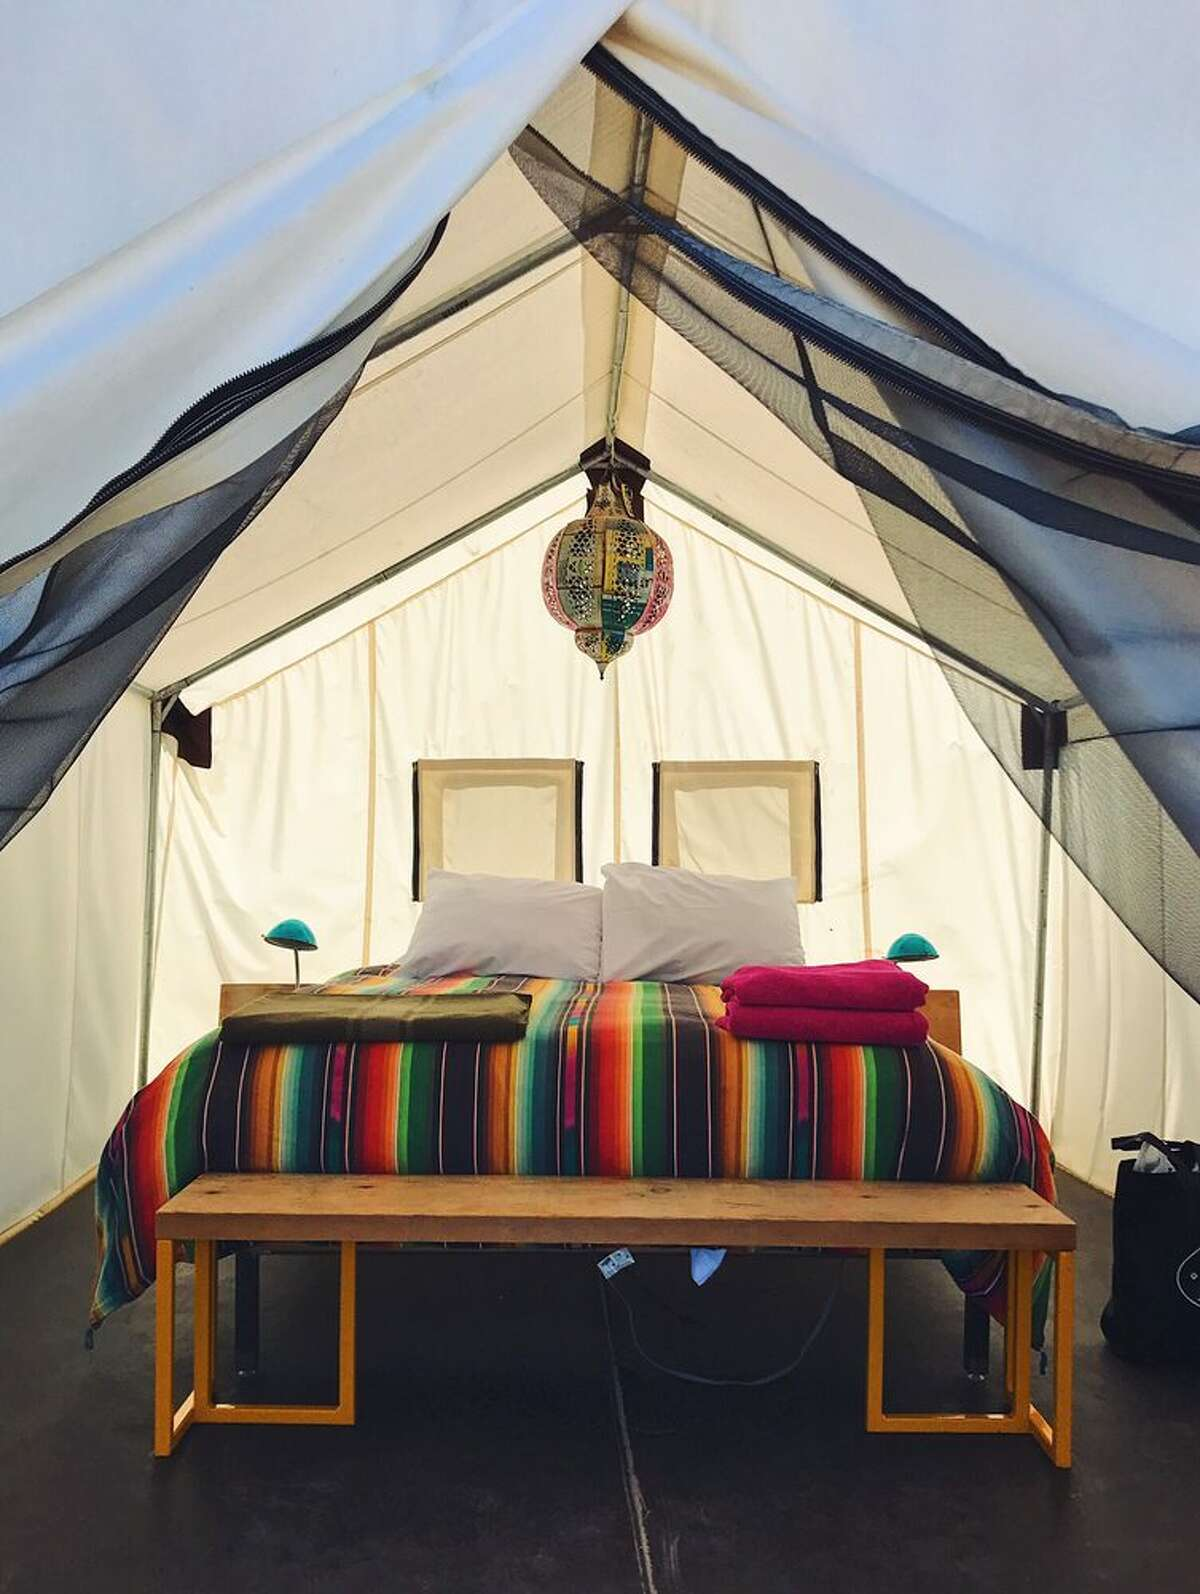 El Cosmico802 S Highland Ave Marfa, TX 79843(432) 729-1950 Not your run of the mill hotel accomodations but full of bohemian inspired charm offering great stargazing opportunities. Sleeping options include staysin a teepee, tent, vintage travel trailer or yurt. Photo: Yelp/Courtney B.